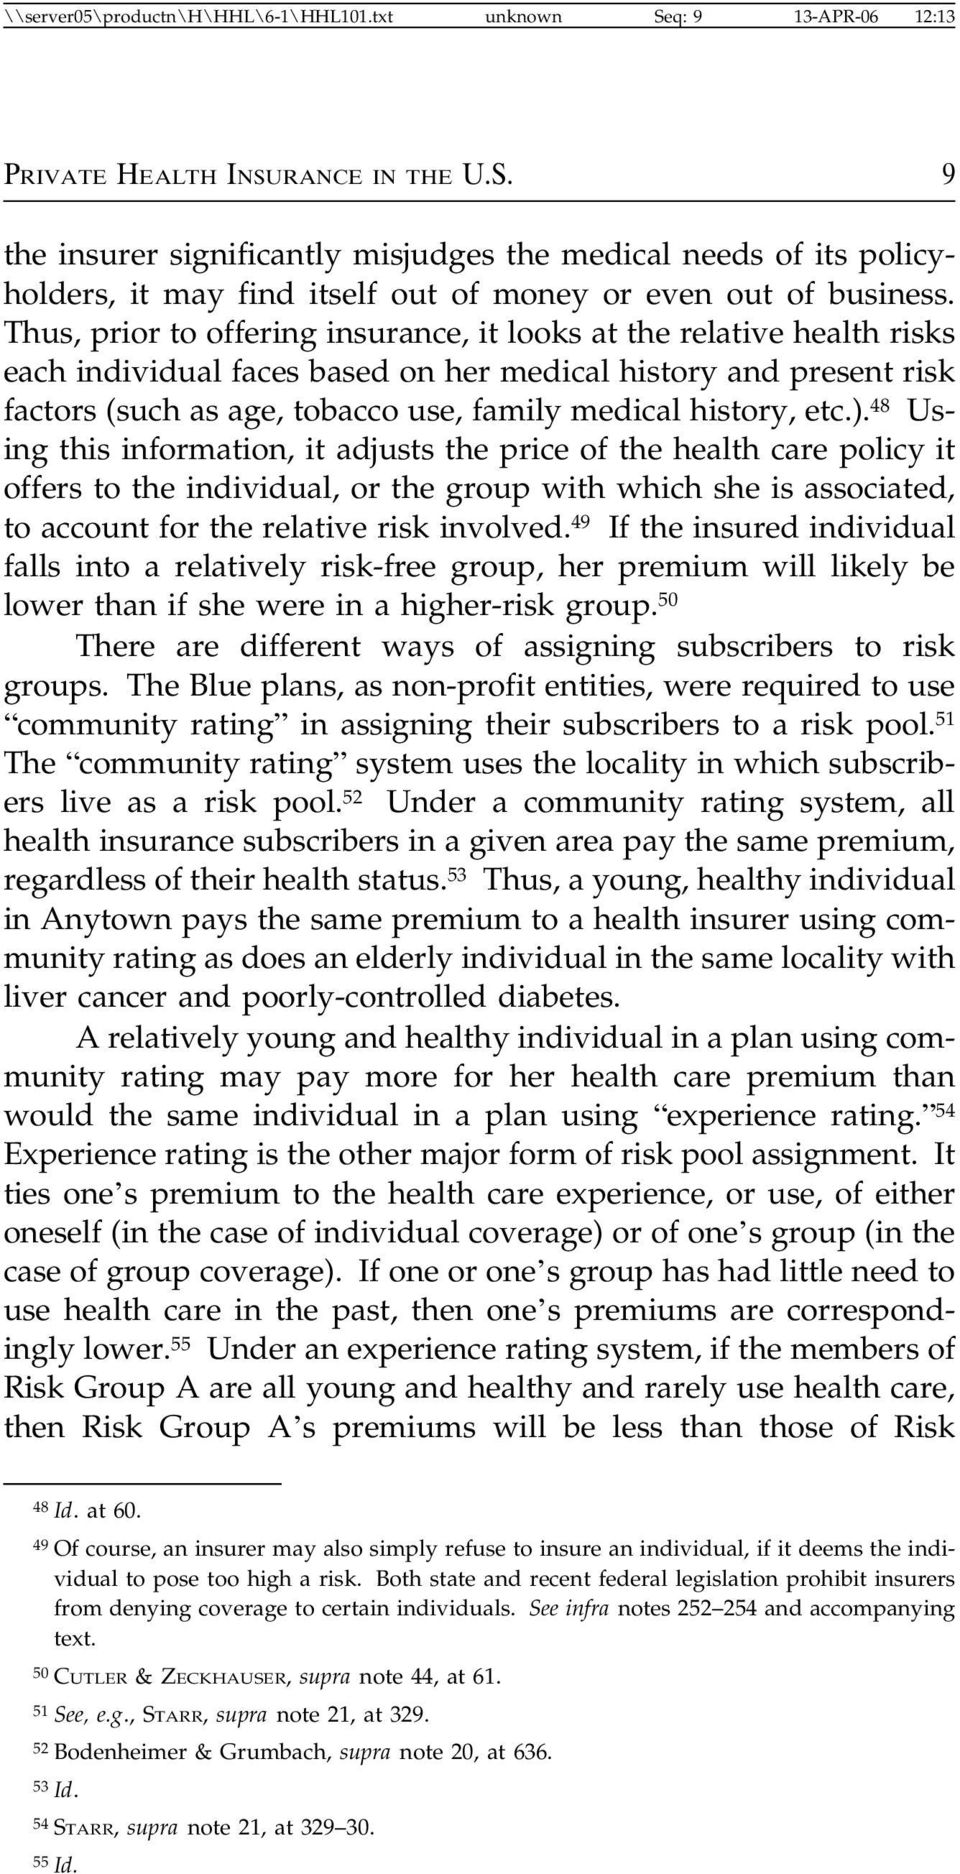 etc.). 48 Using this information, it adjusts the price of the health care policy it offers to the individual, or the group with which she is associated, to account for the relative risk involved.